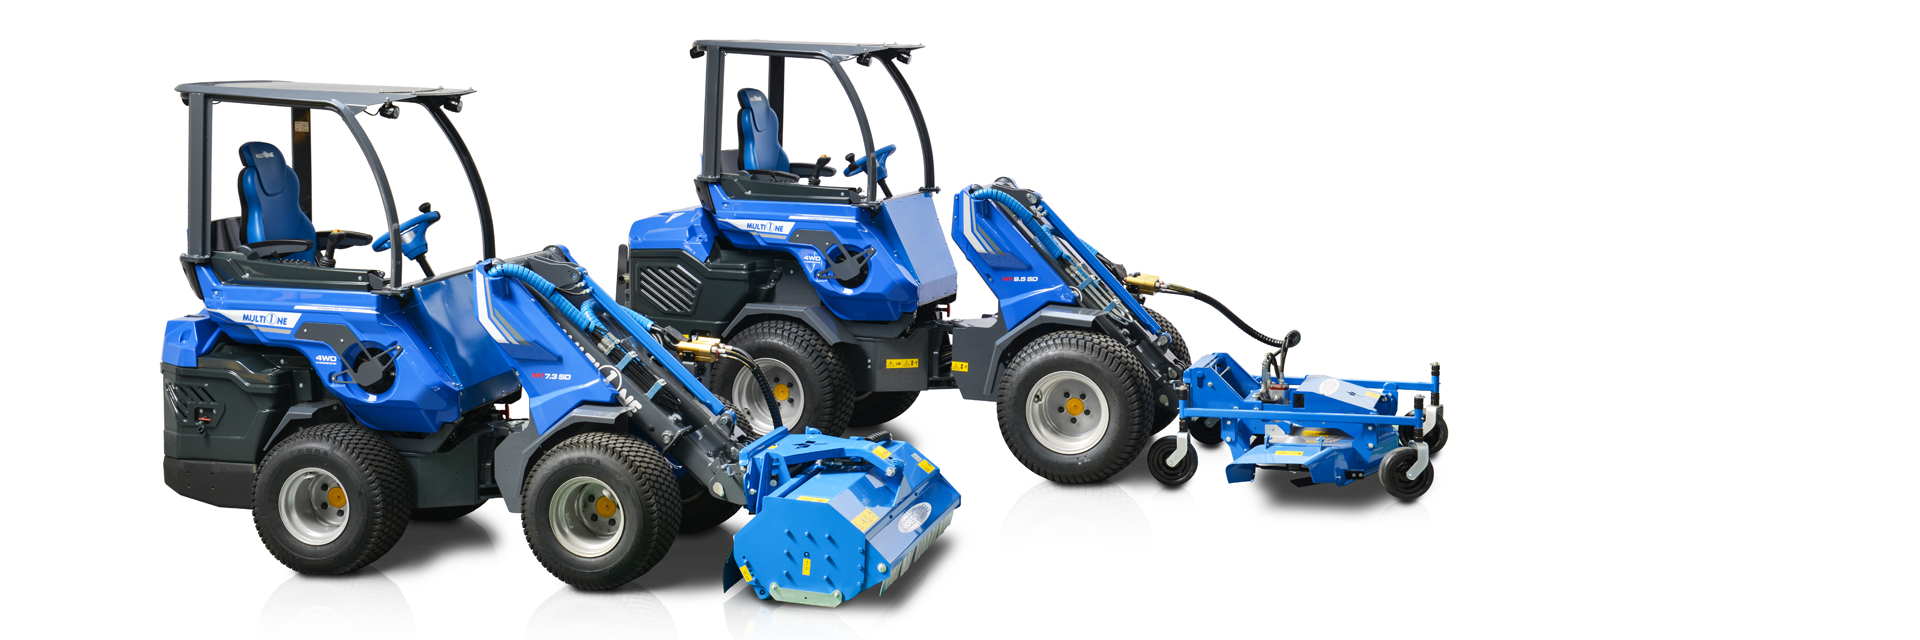 MultiOne SD series mini loader